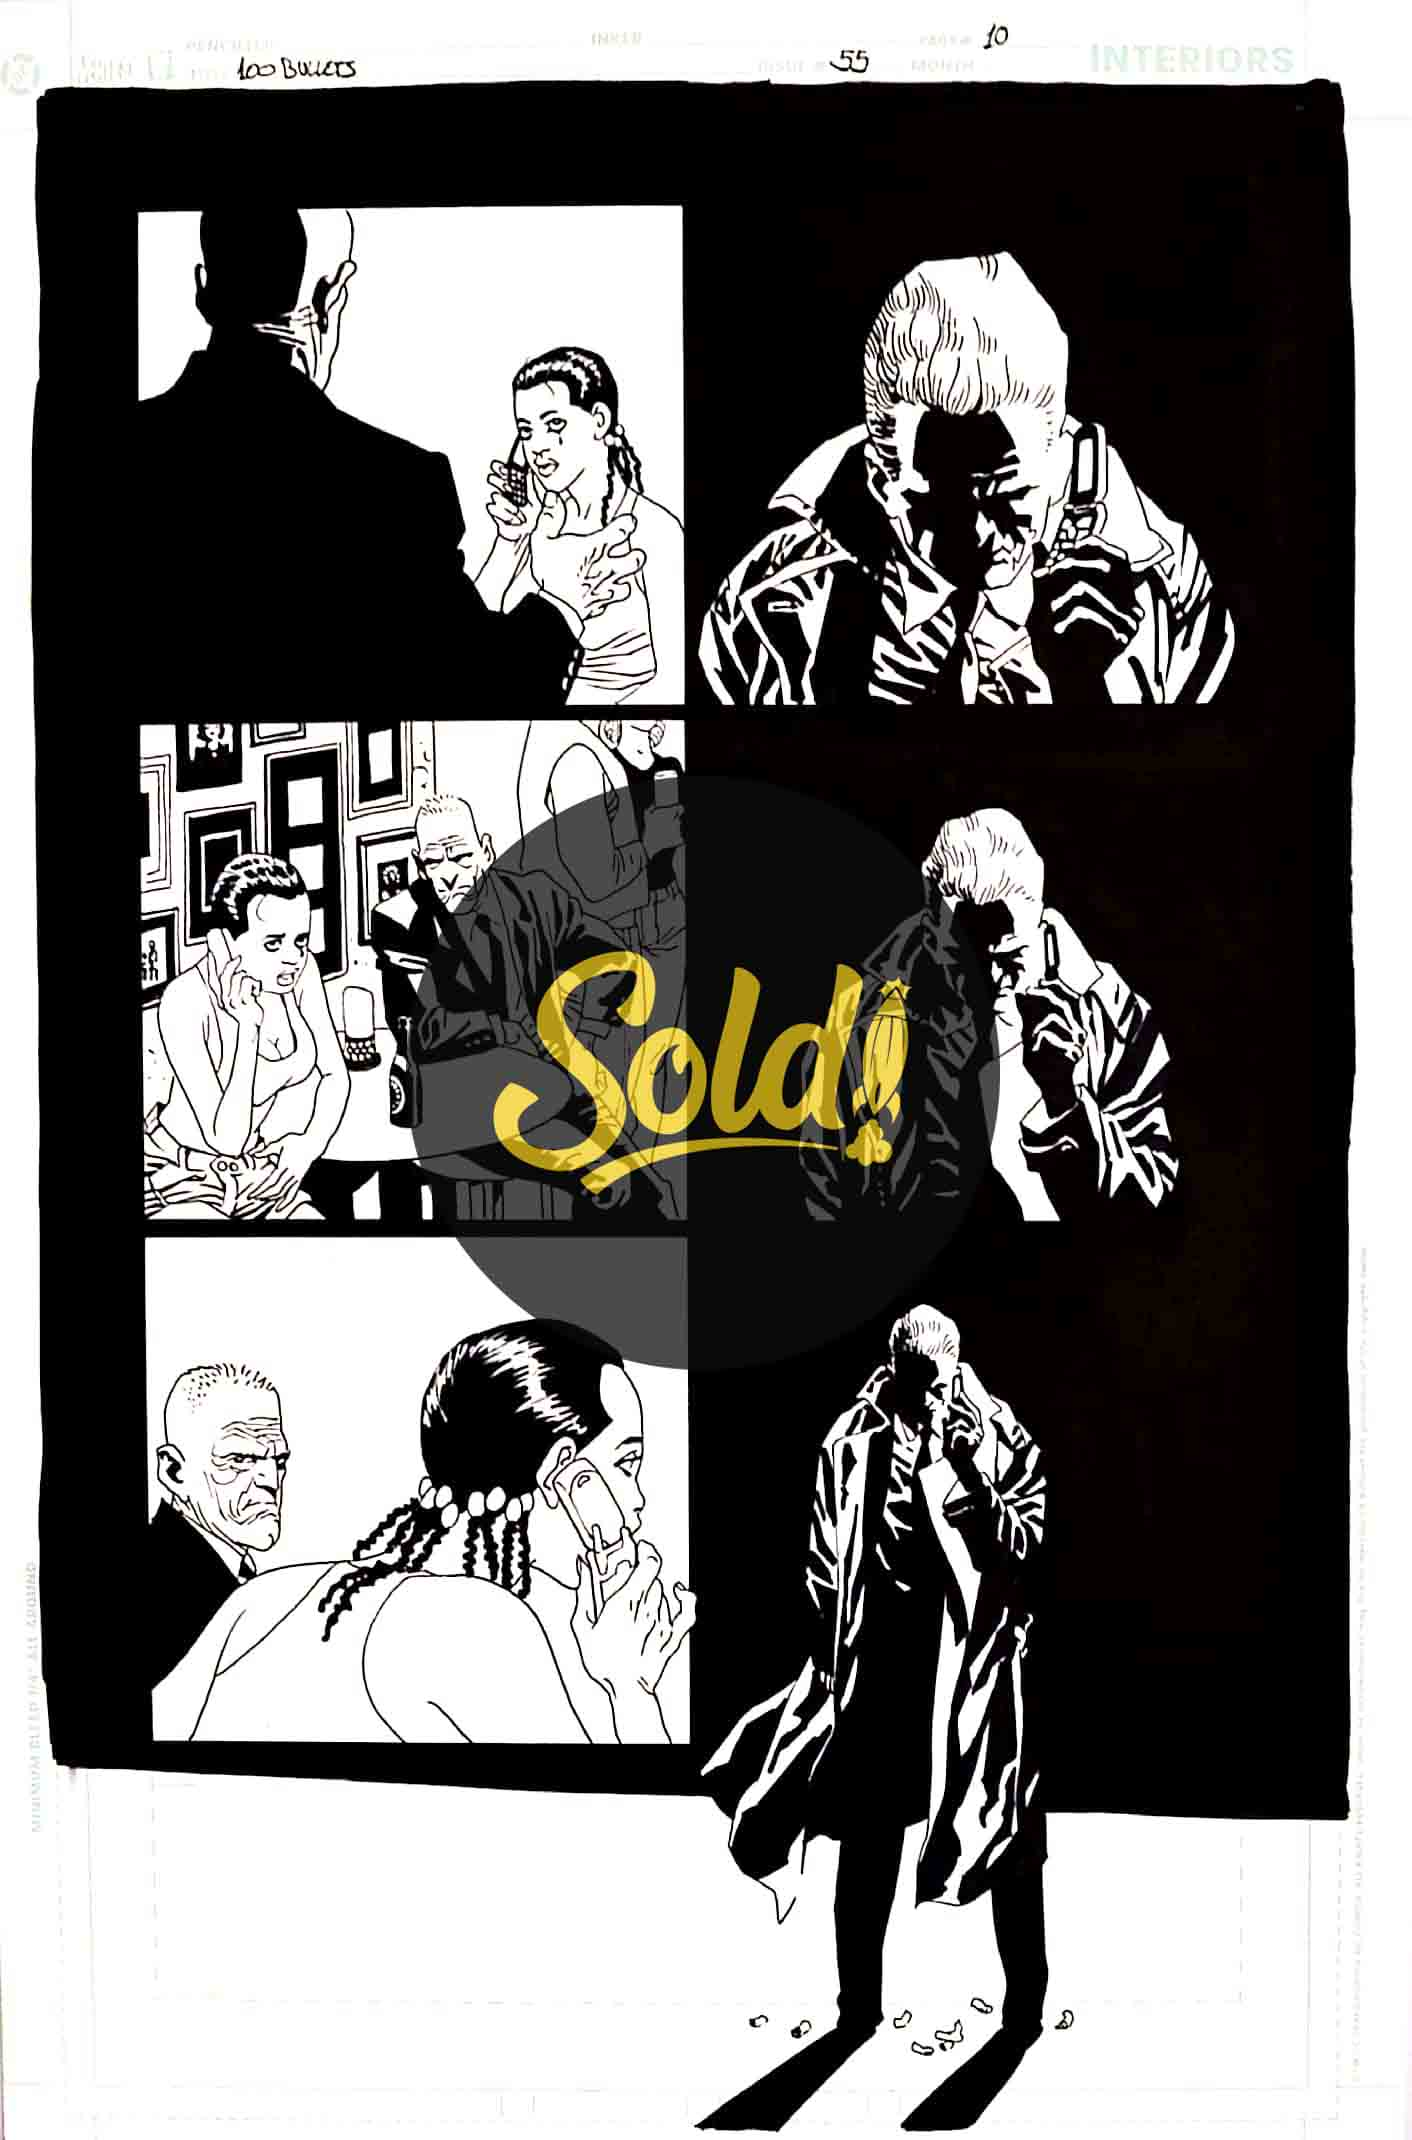 Issue 55, page 10 - sold